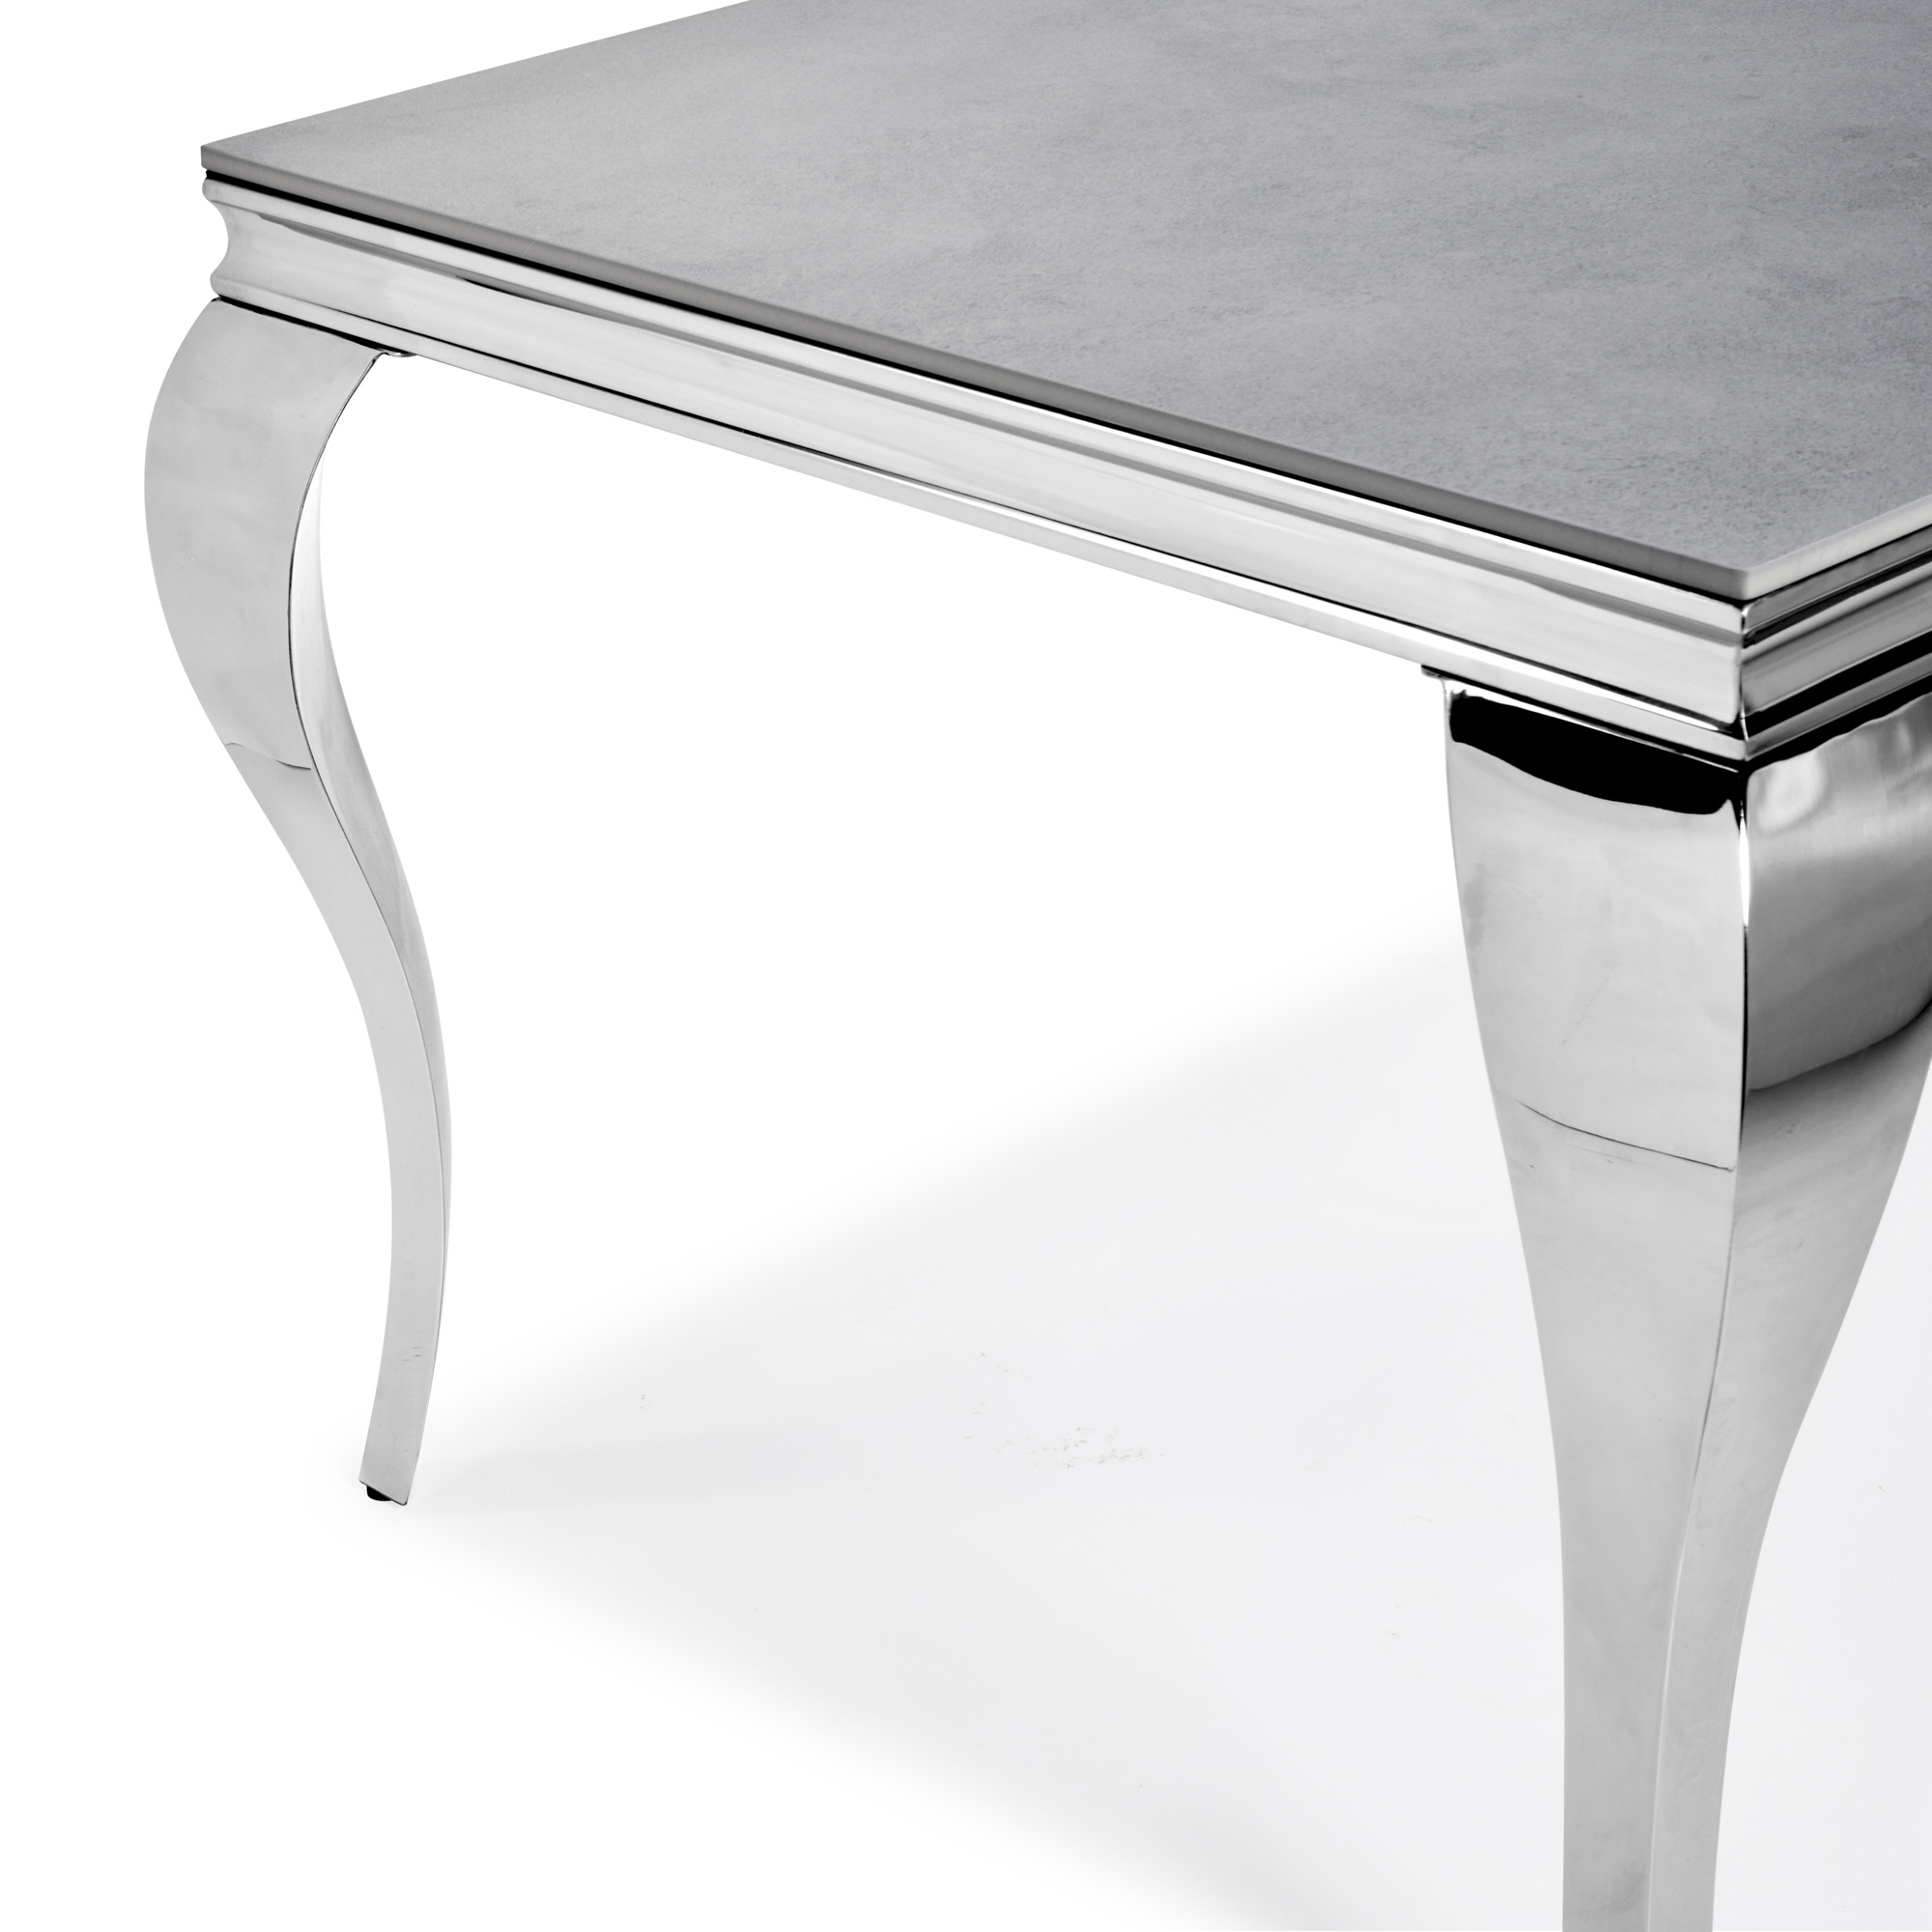 1.6m Louis Polished Stainless Steel Dining Table with Grey Ceramic Top